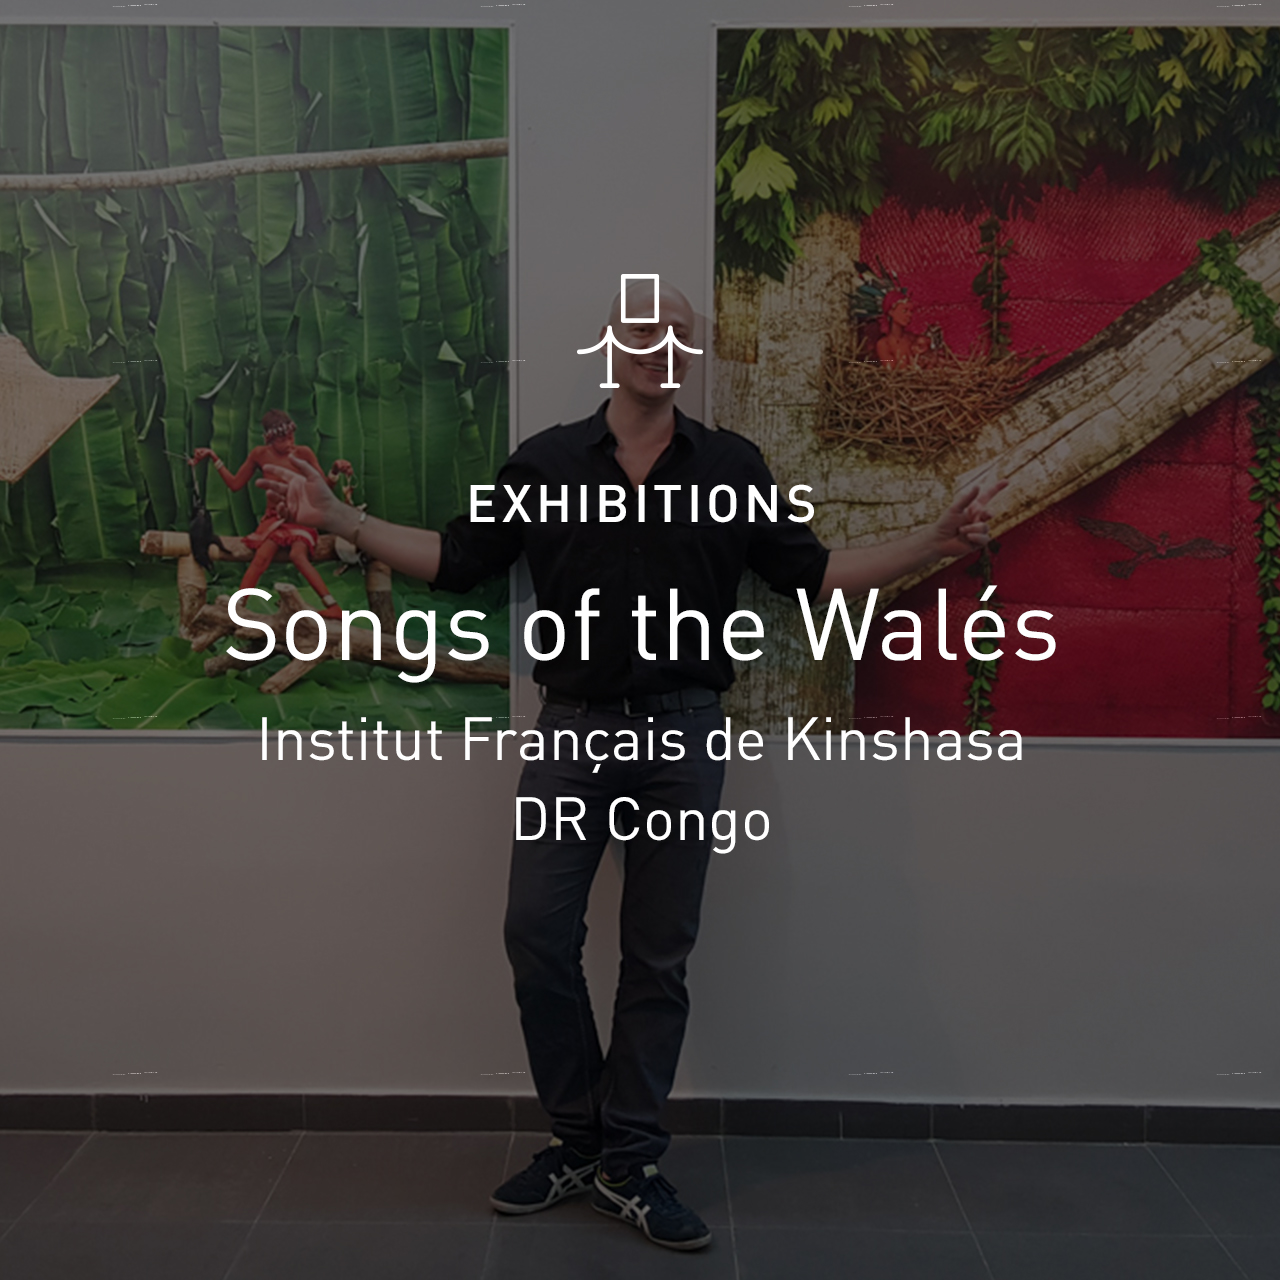 new_c_Songs_of_the_Walés_-_Exhibitions_Kin